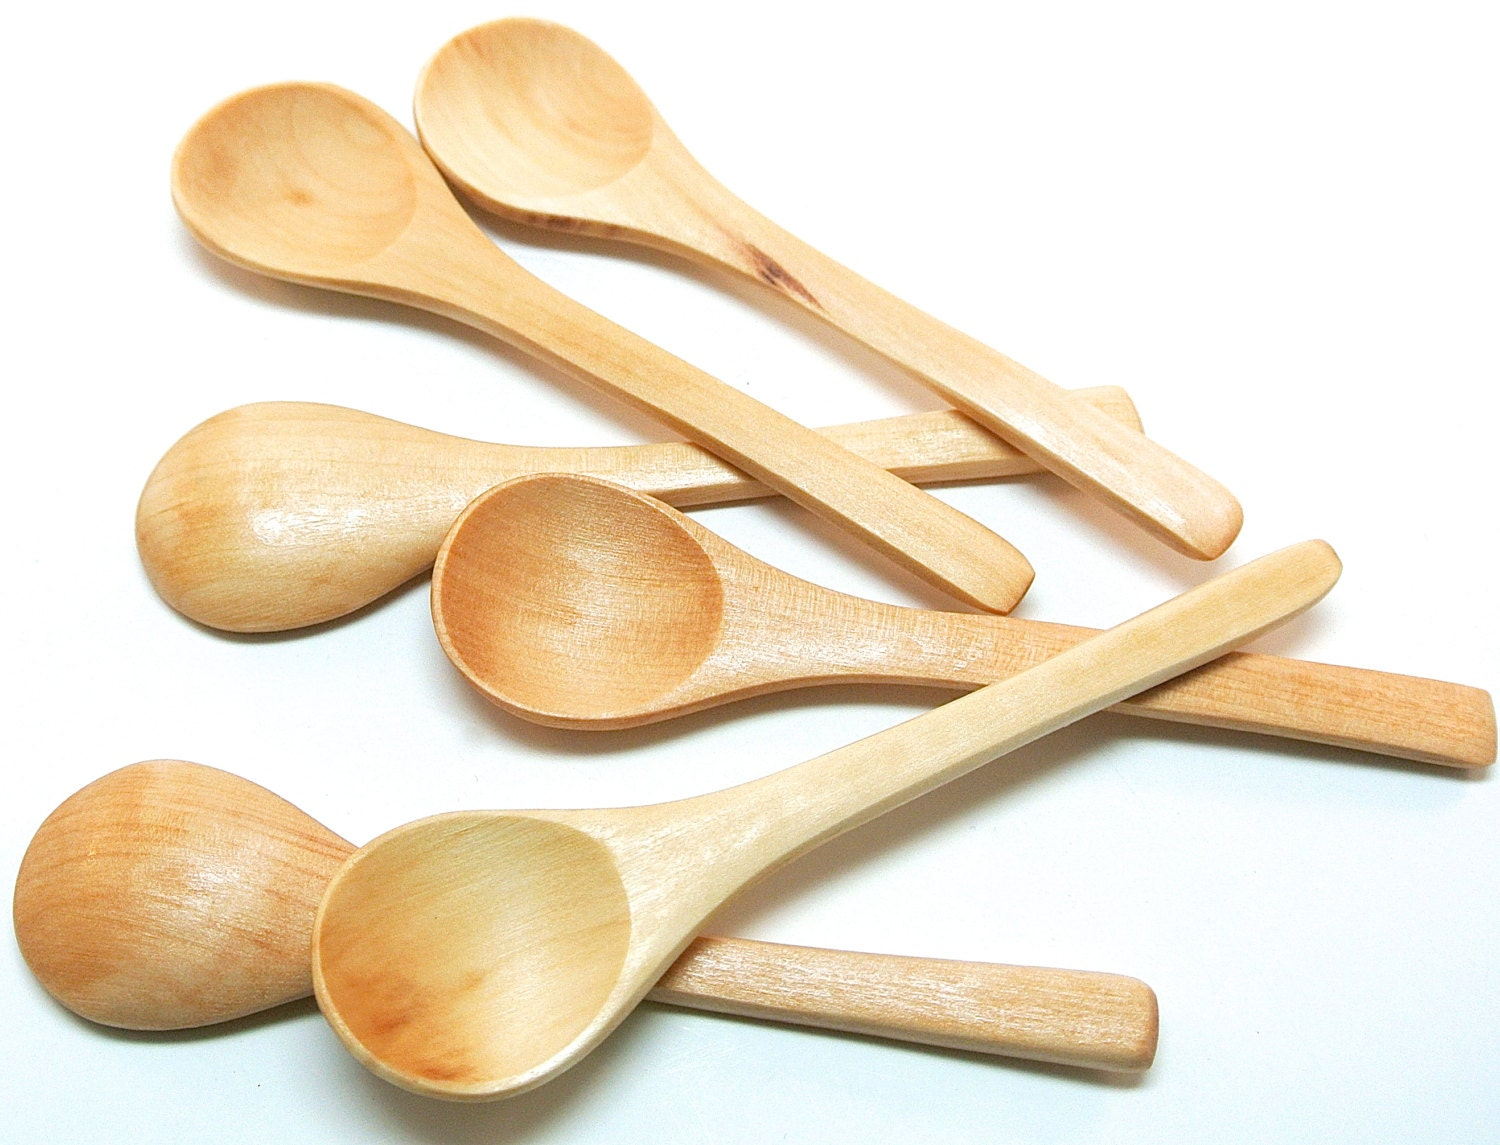 6 Small Wood Spoons Mini Wooden Spoons for Honey and Bath